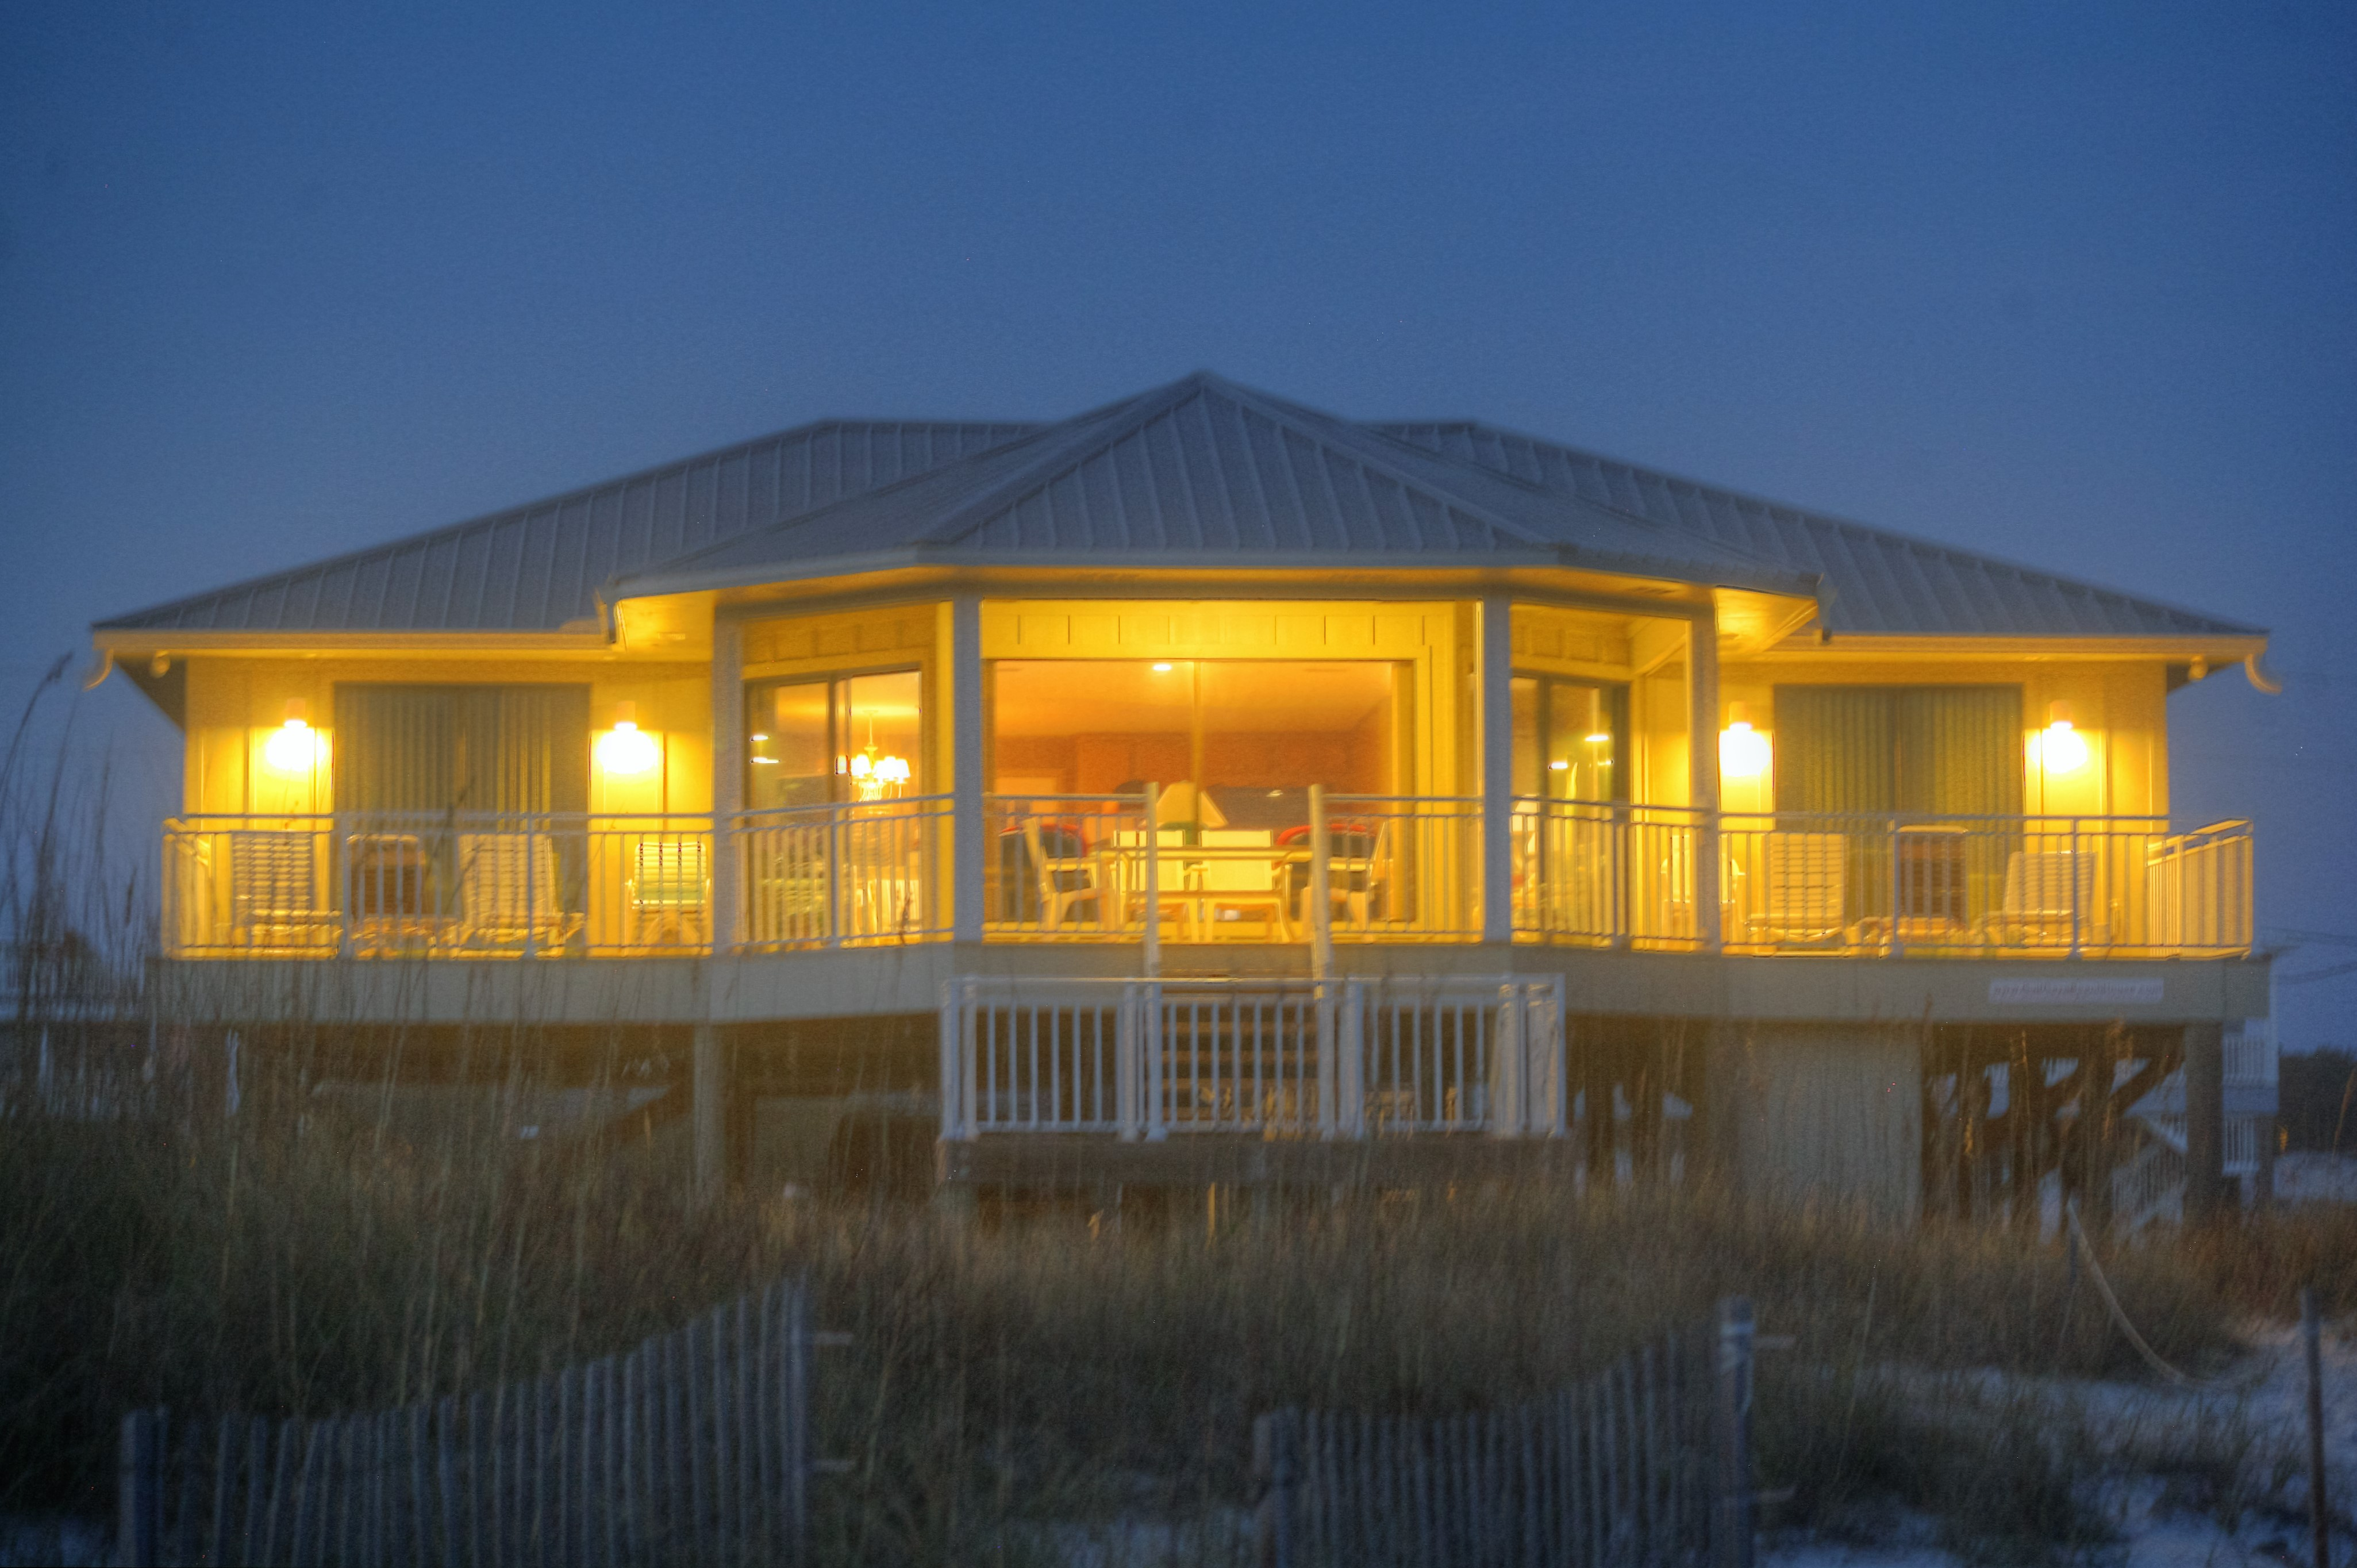 https://alabama-travel.s3.amazonaws.com/partners-uploads/photo/image/578e9f100337f81812000171/night_photo_of_beach_house_2.jpg